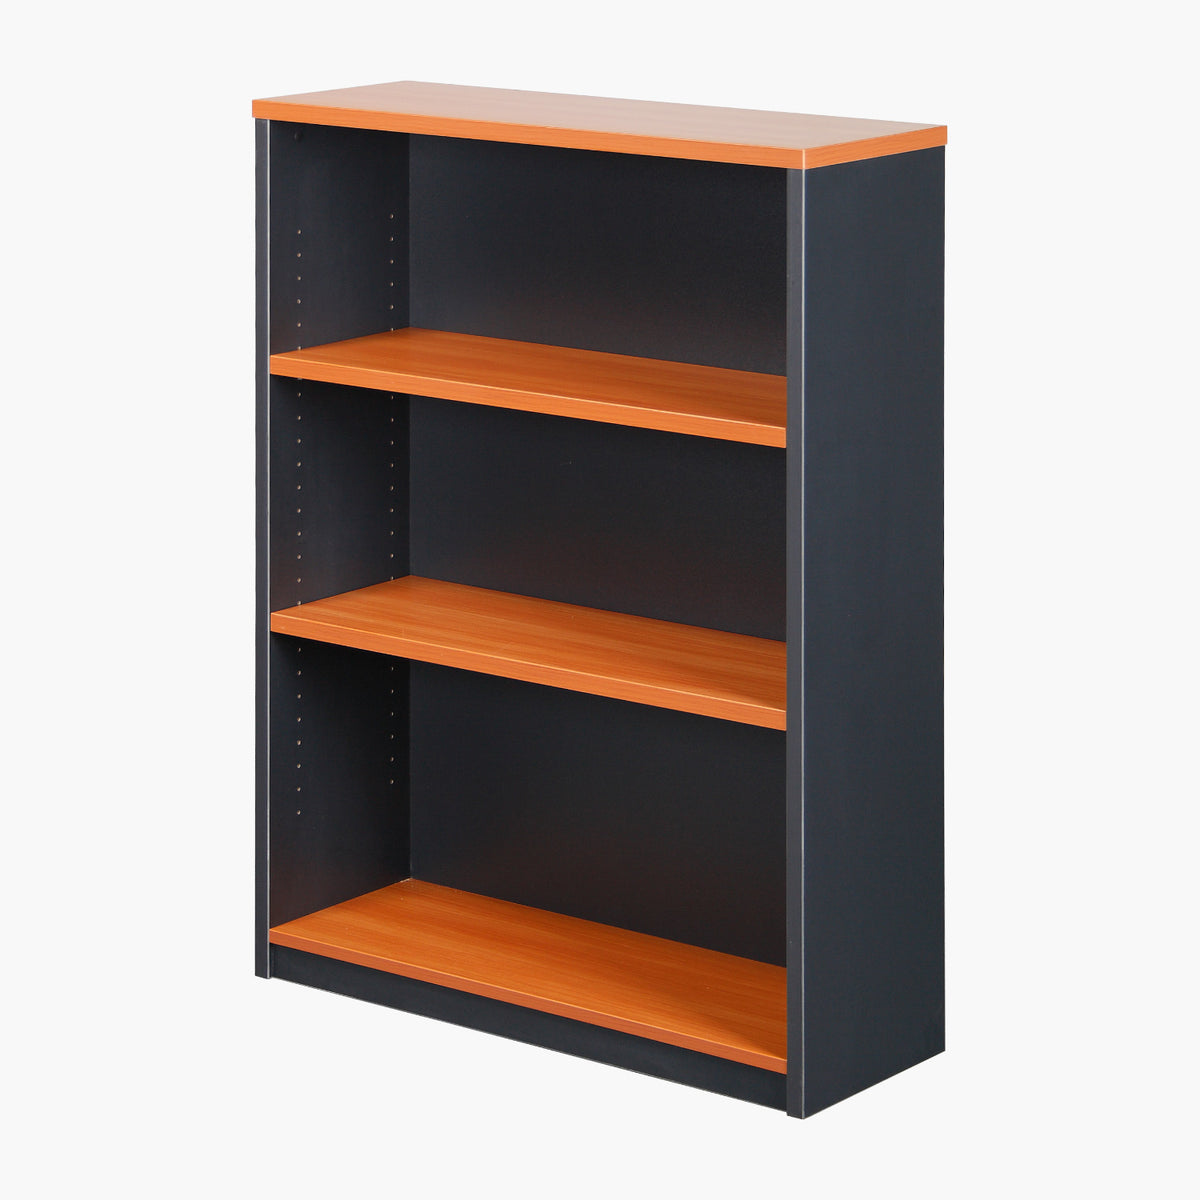 TWO-TONE OPEN BOOKCASES